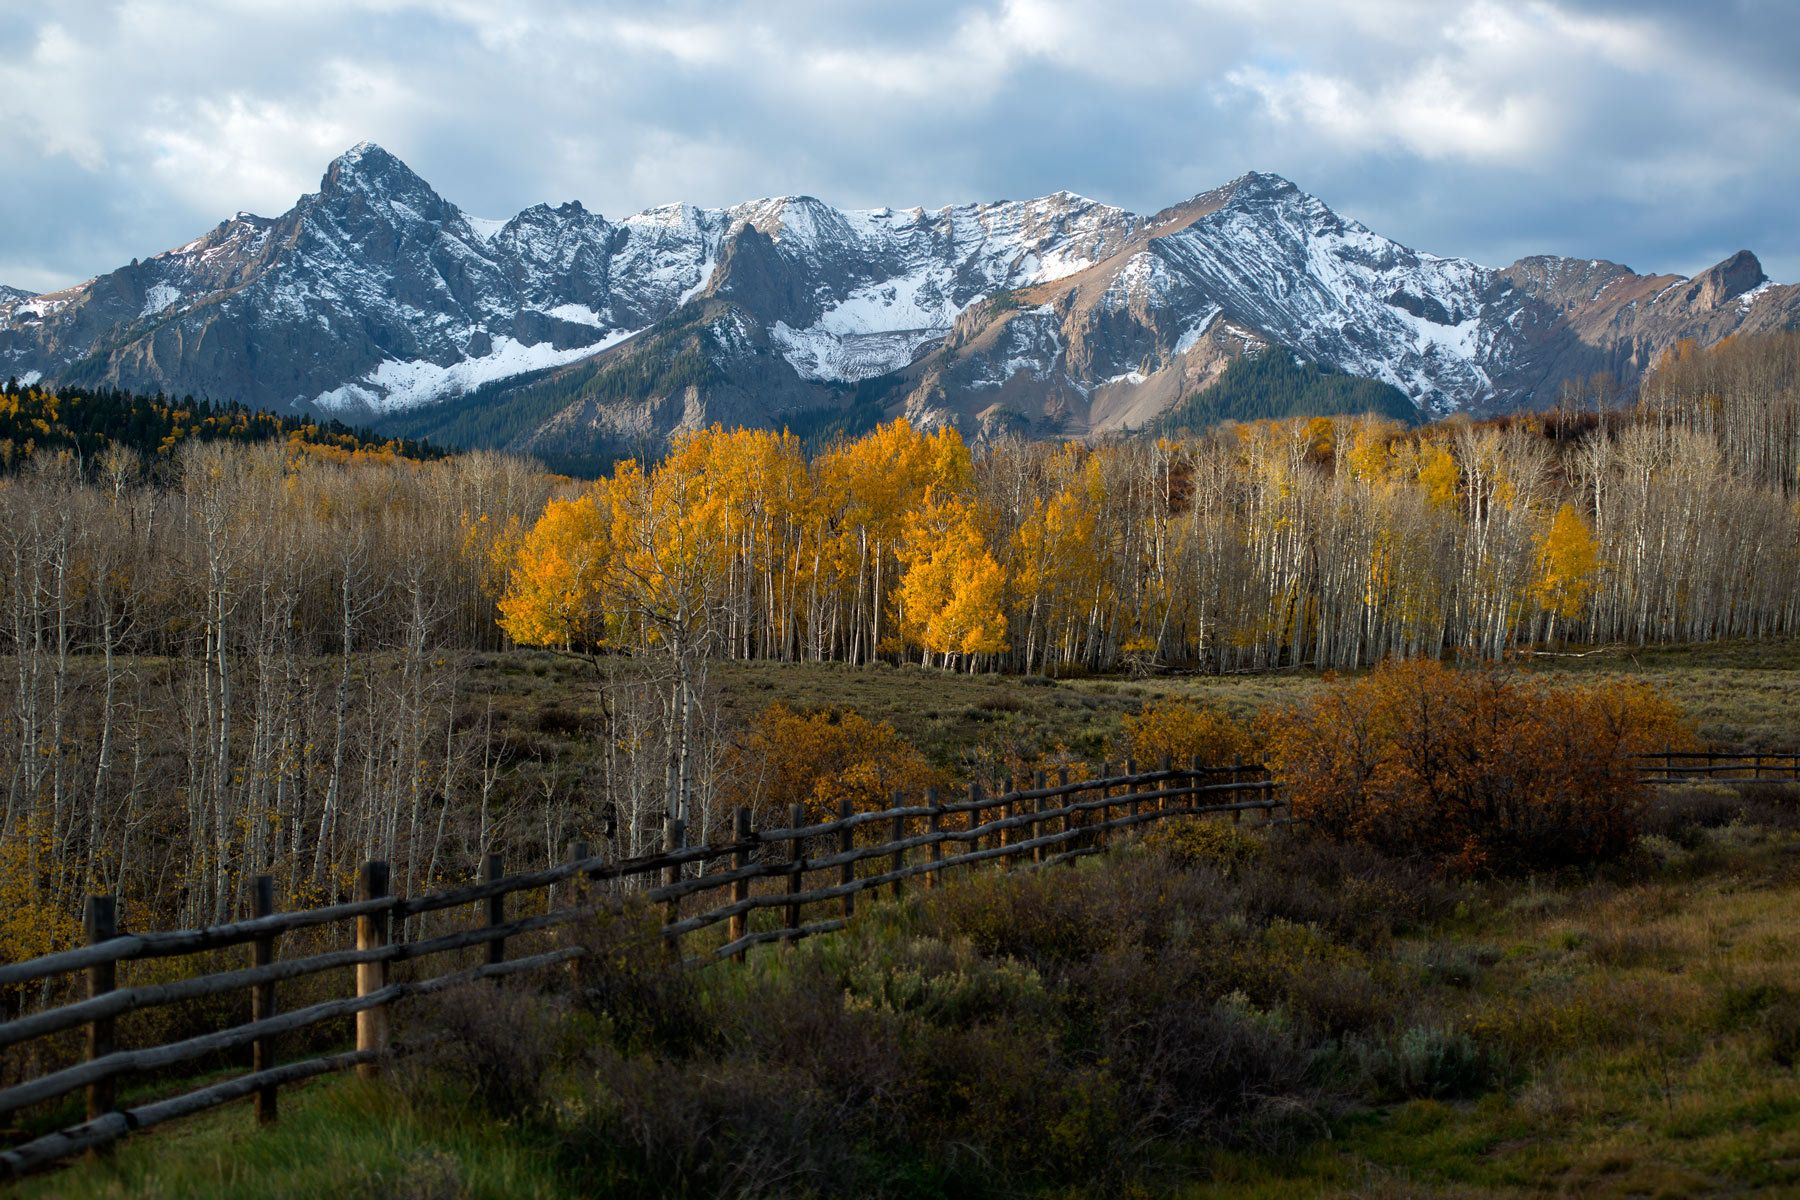 October 05, 2012 - Ouray County